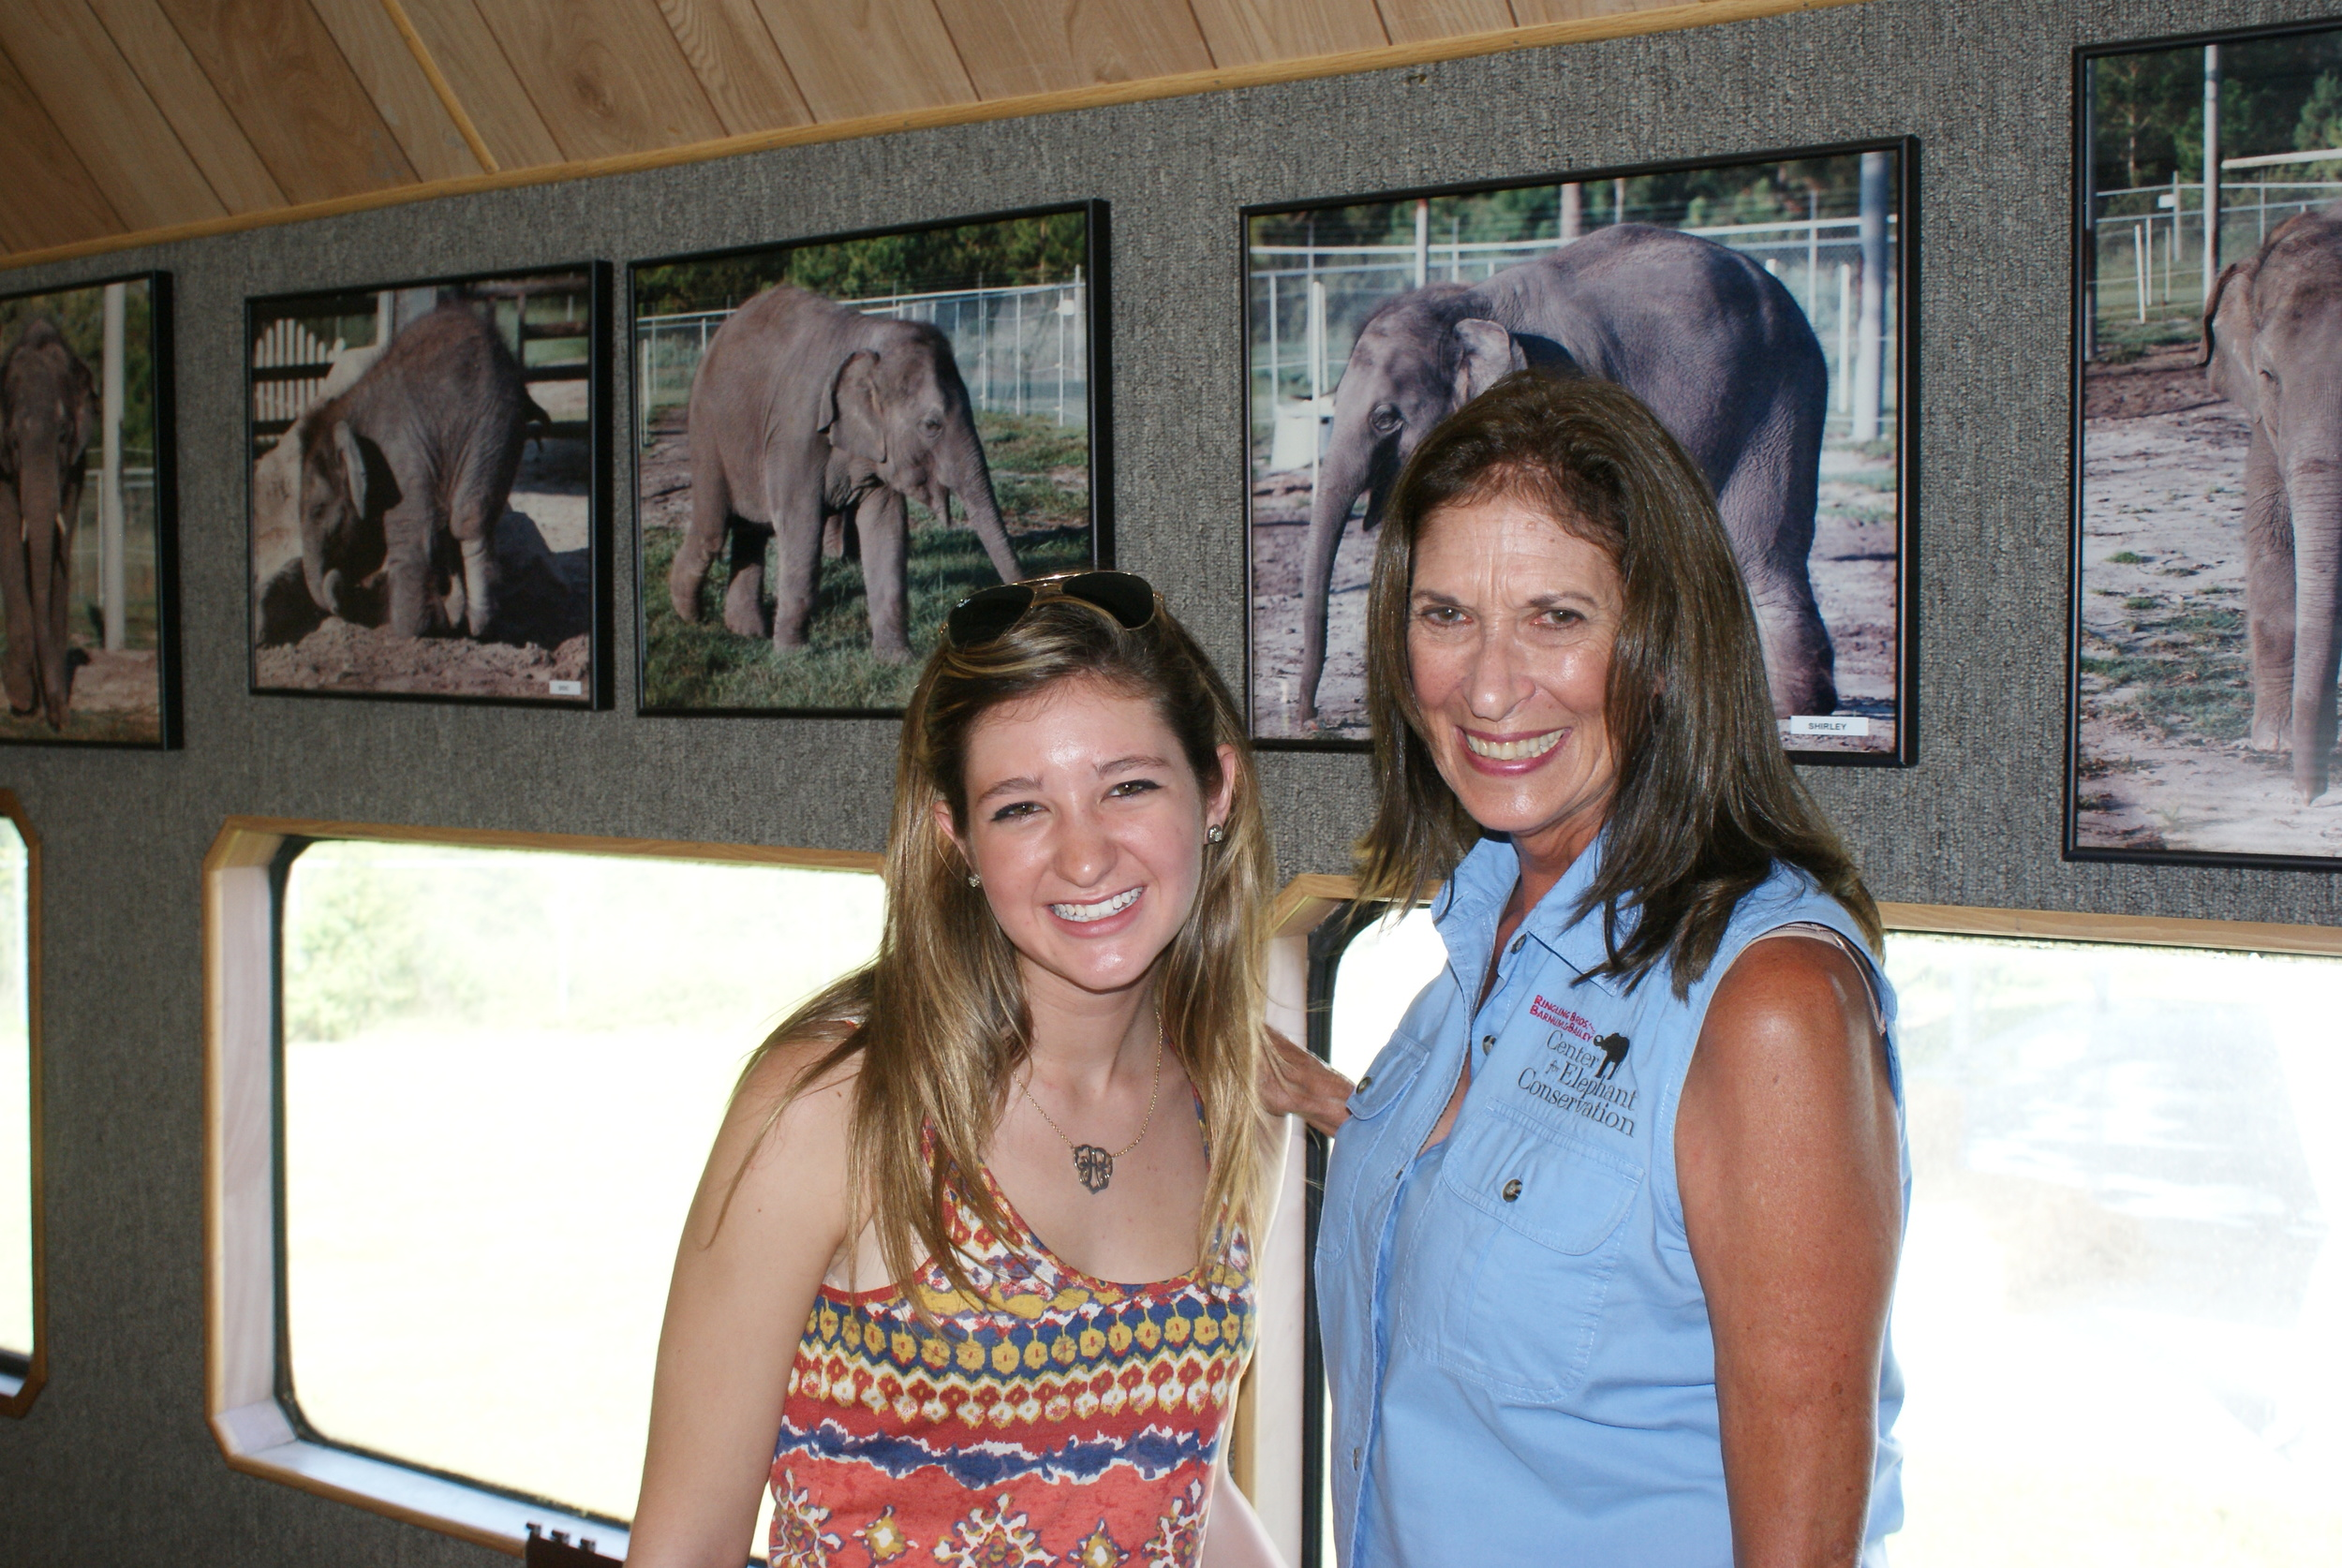 Elephant Conservation Ctr Aug 2014 026.JPG